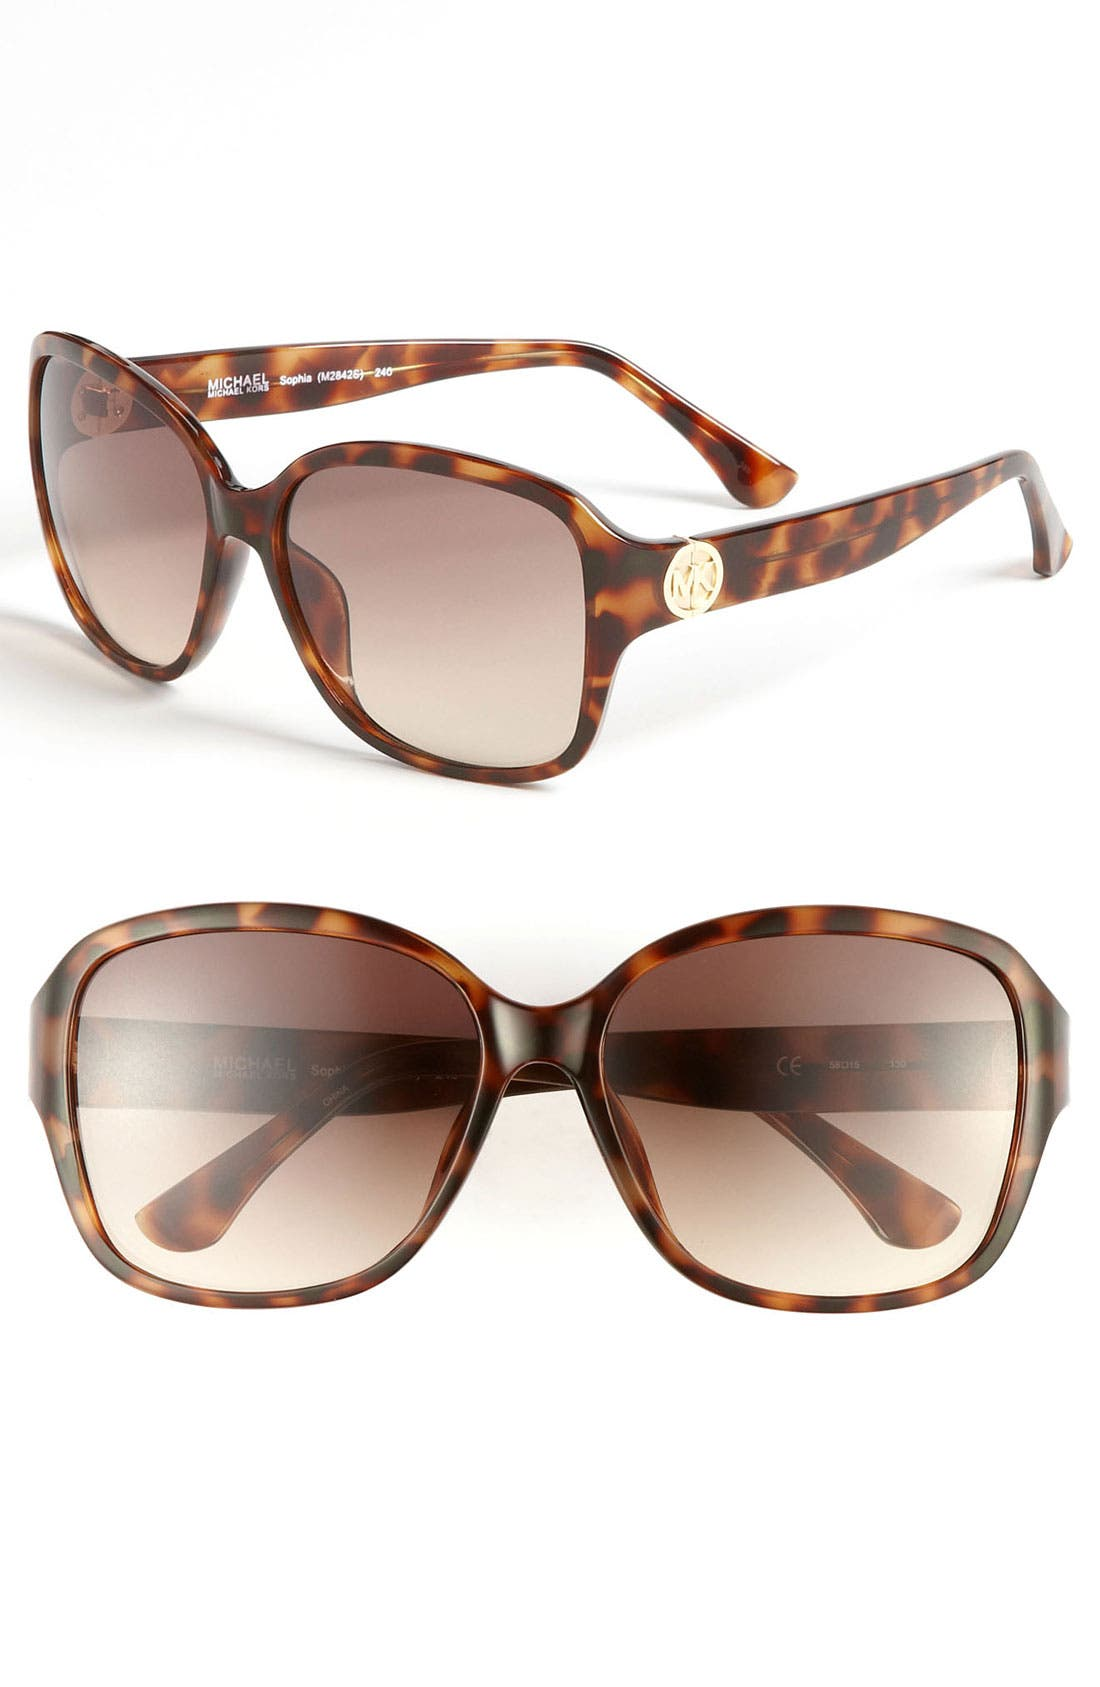 Alternate Image 1 Selected - MICHAEL Michael Kors 'Sophia' 58mm Sunglasses